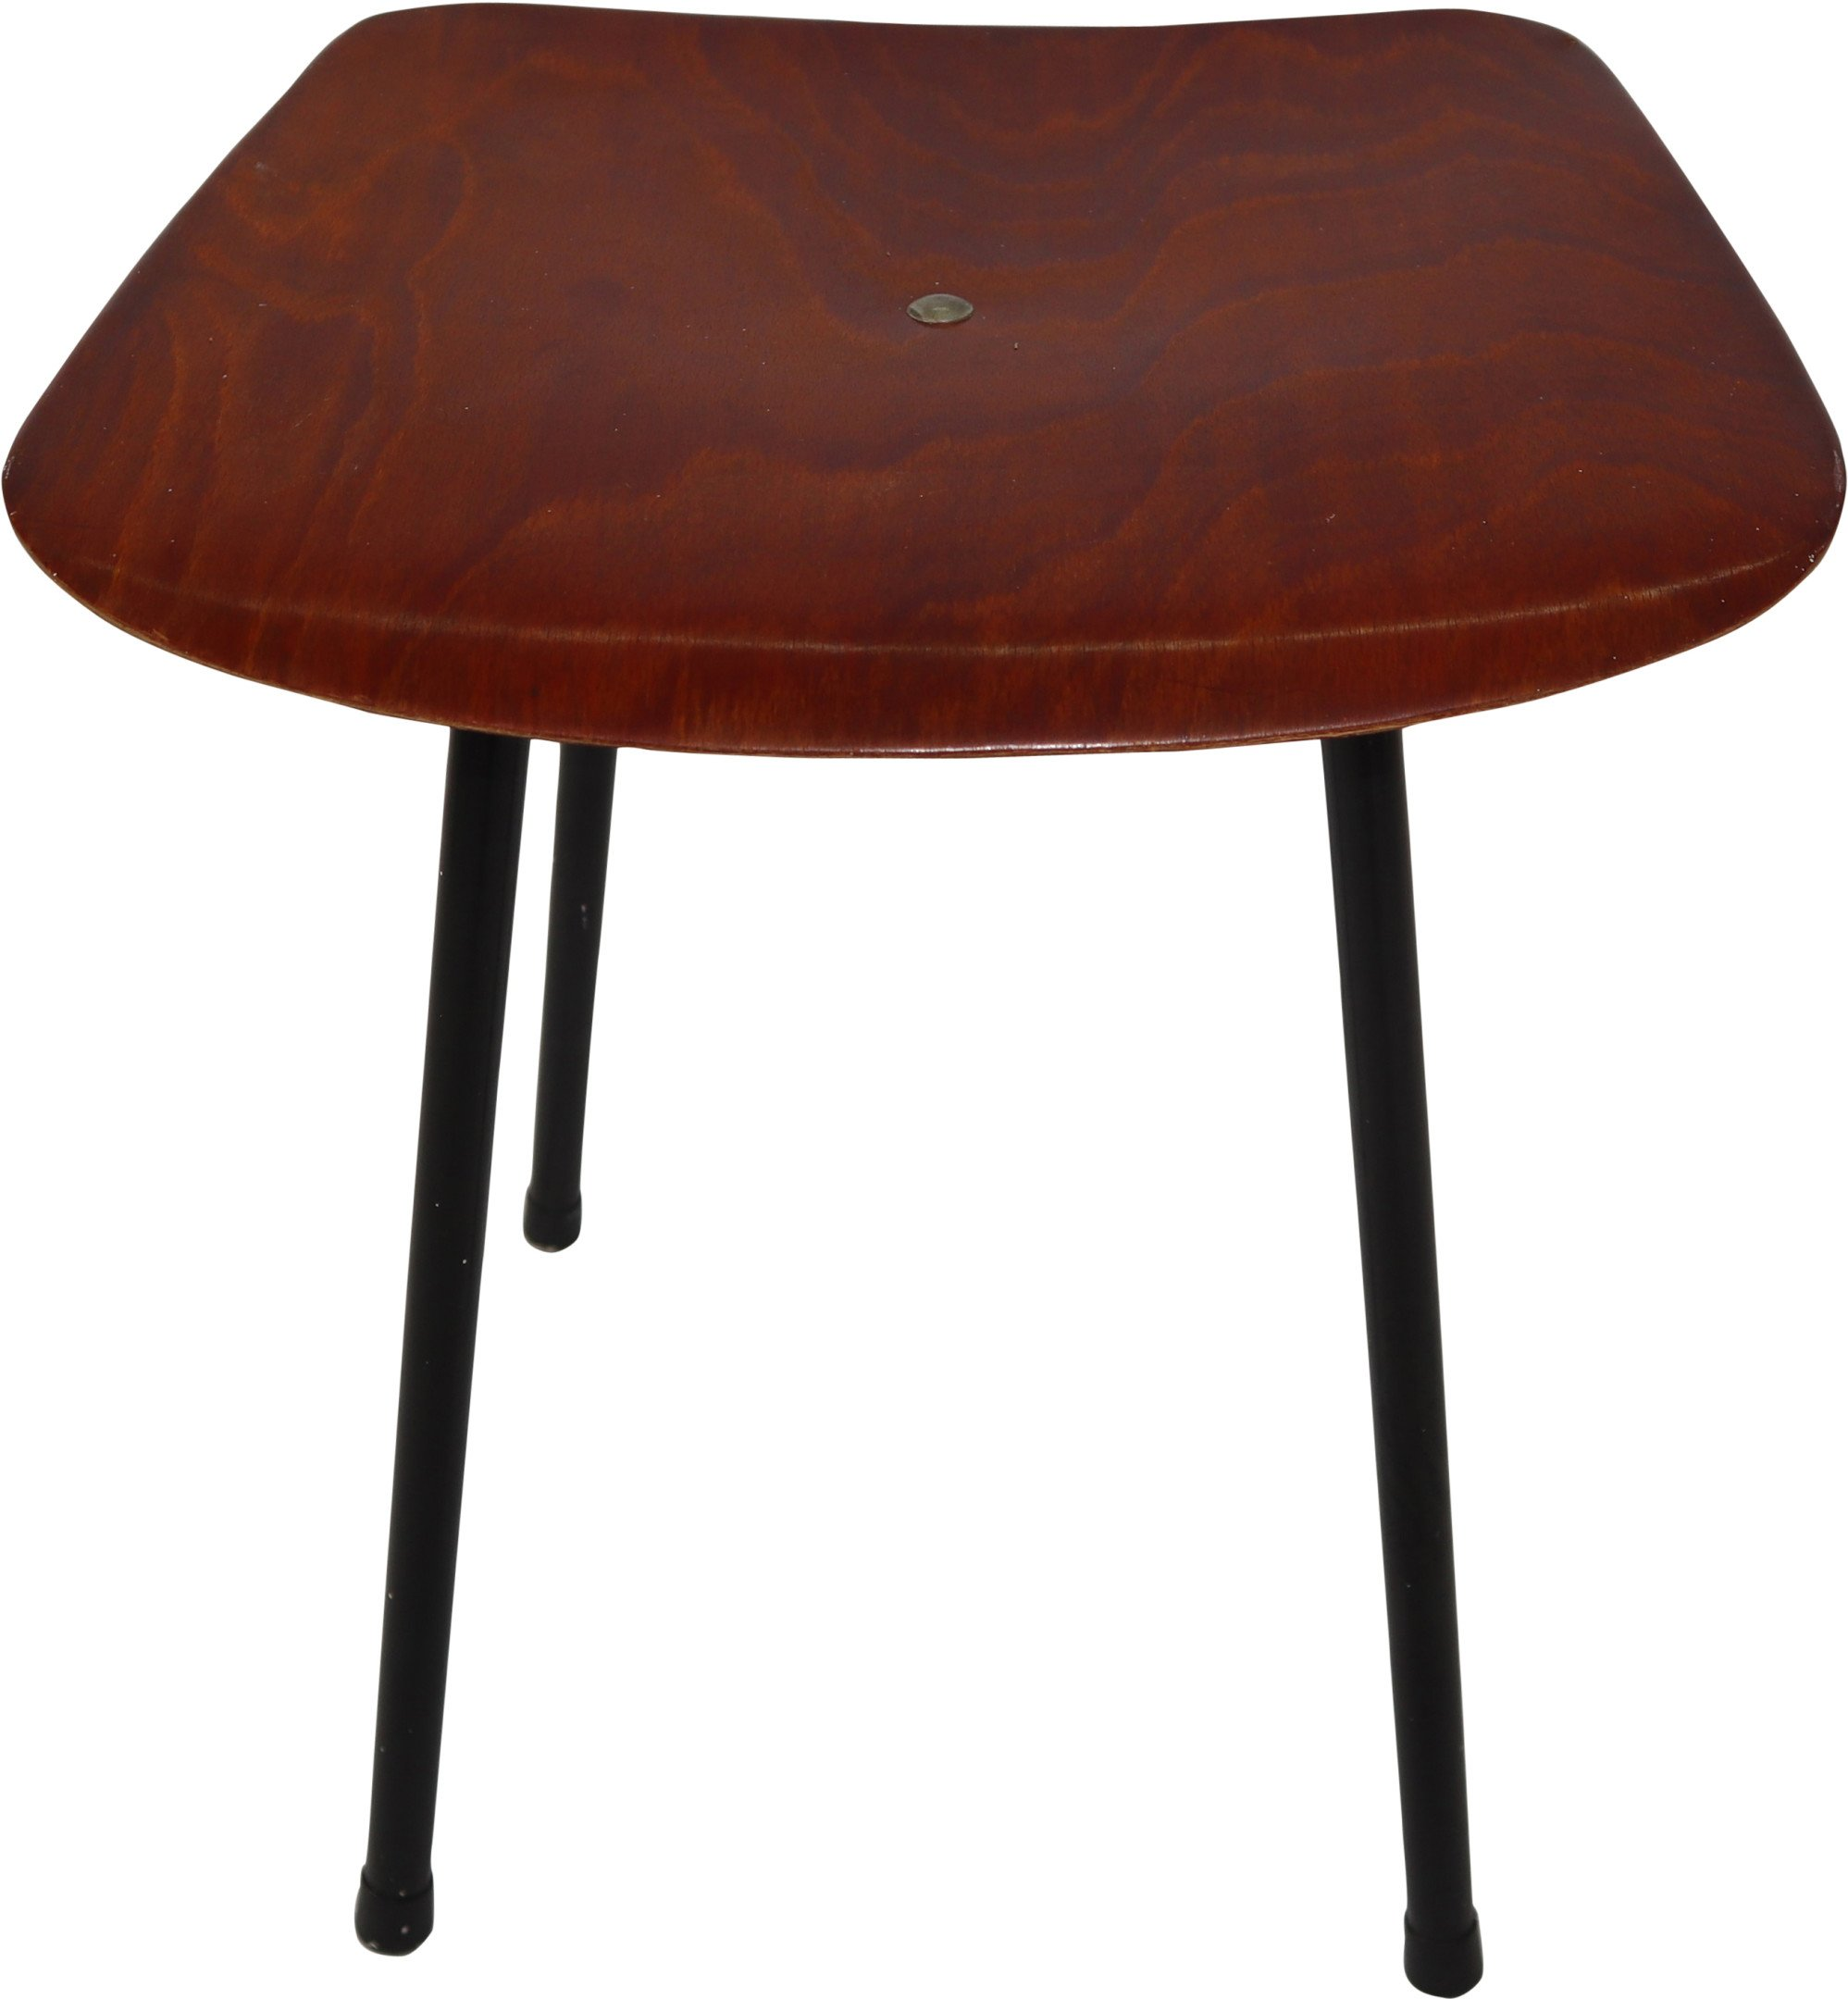 Stool, Pagholz, 1970s